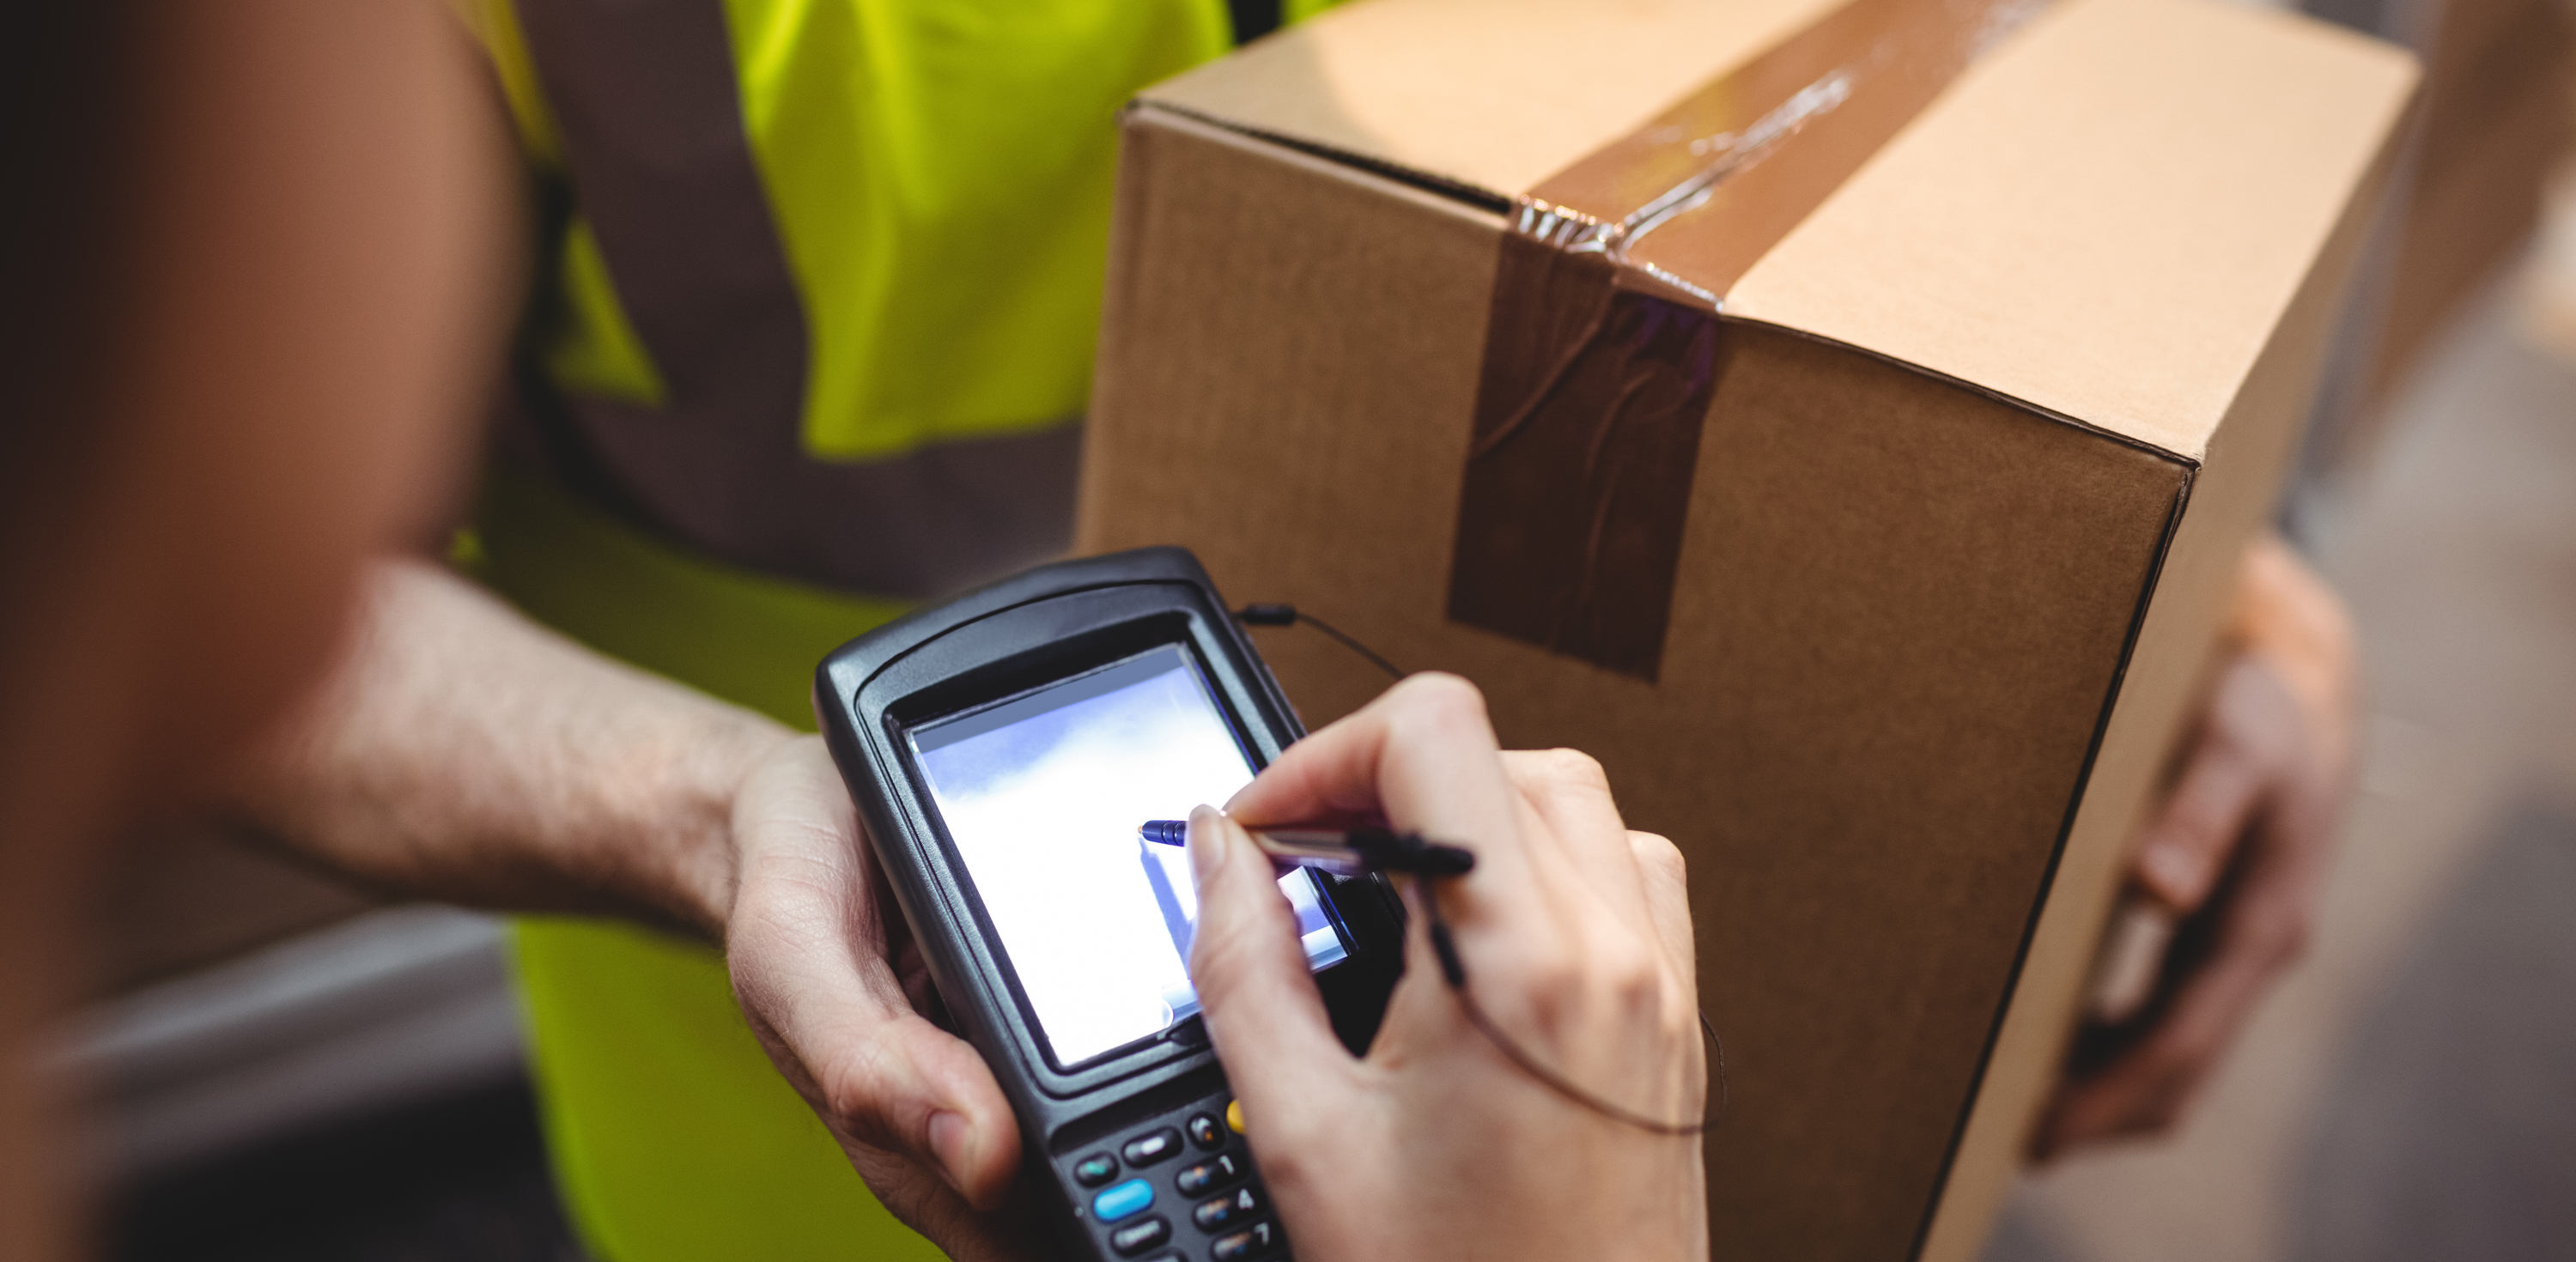 An image showing a Parcel being delivered and being signed for on a delivery tracking device.